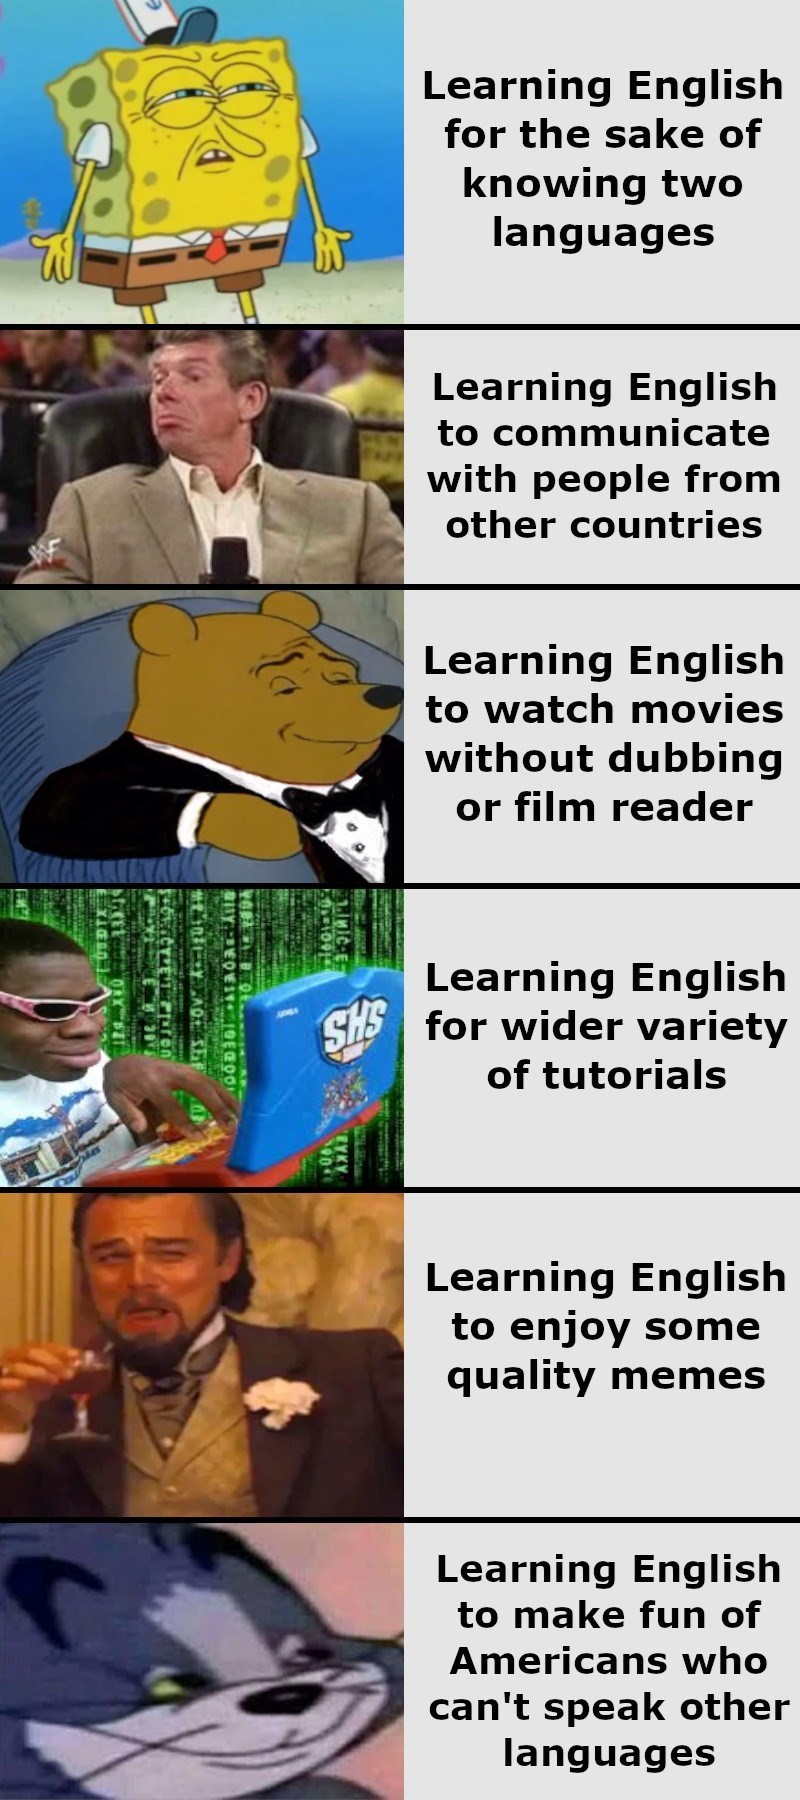 top ten 10 memes daily | Learning English sake knowing two languages Learning English communicate with people other countries Learning English watch movies without dubbing or film reader Learning English SHS wider variety tutorials Learning English enjoy some quality memes Learning English make fun Americans who can't speak other languages EYKY